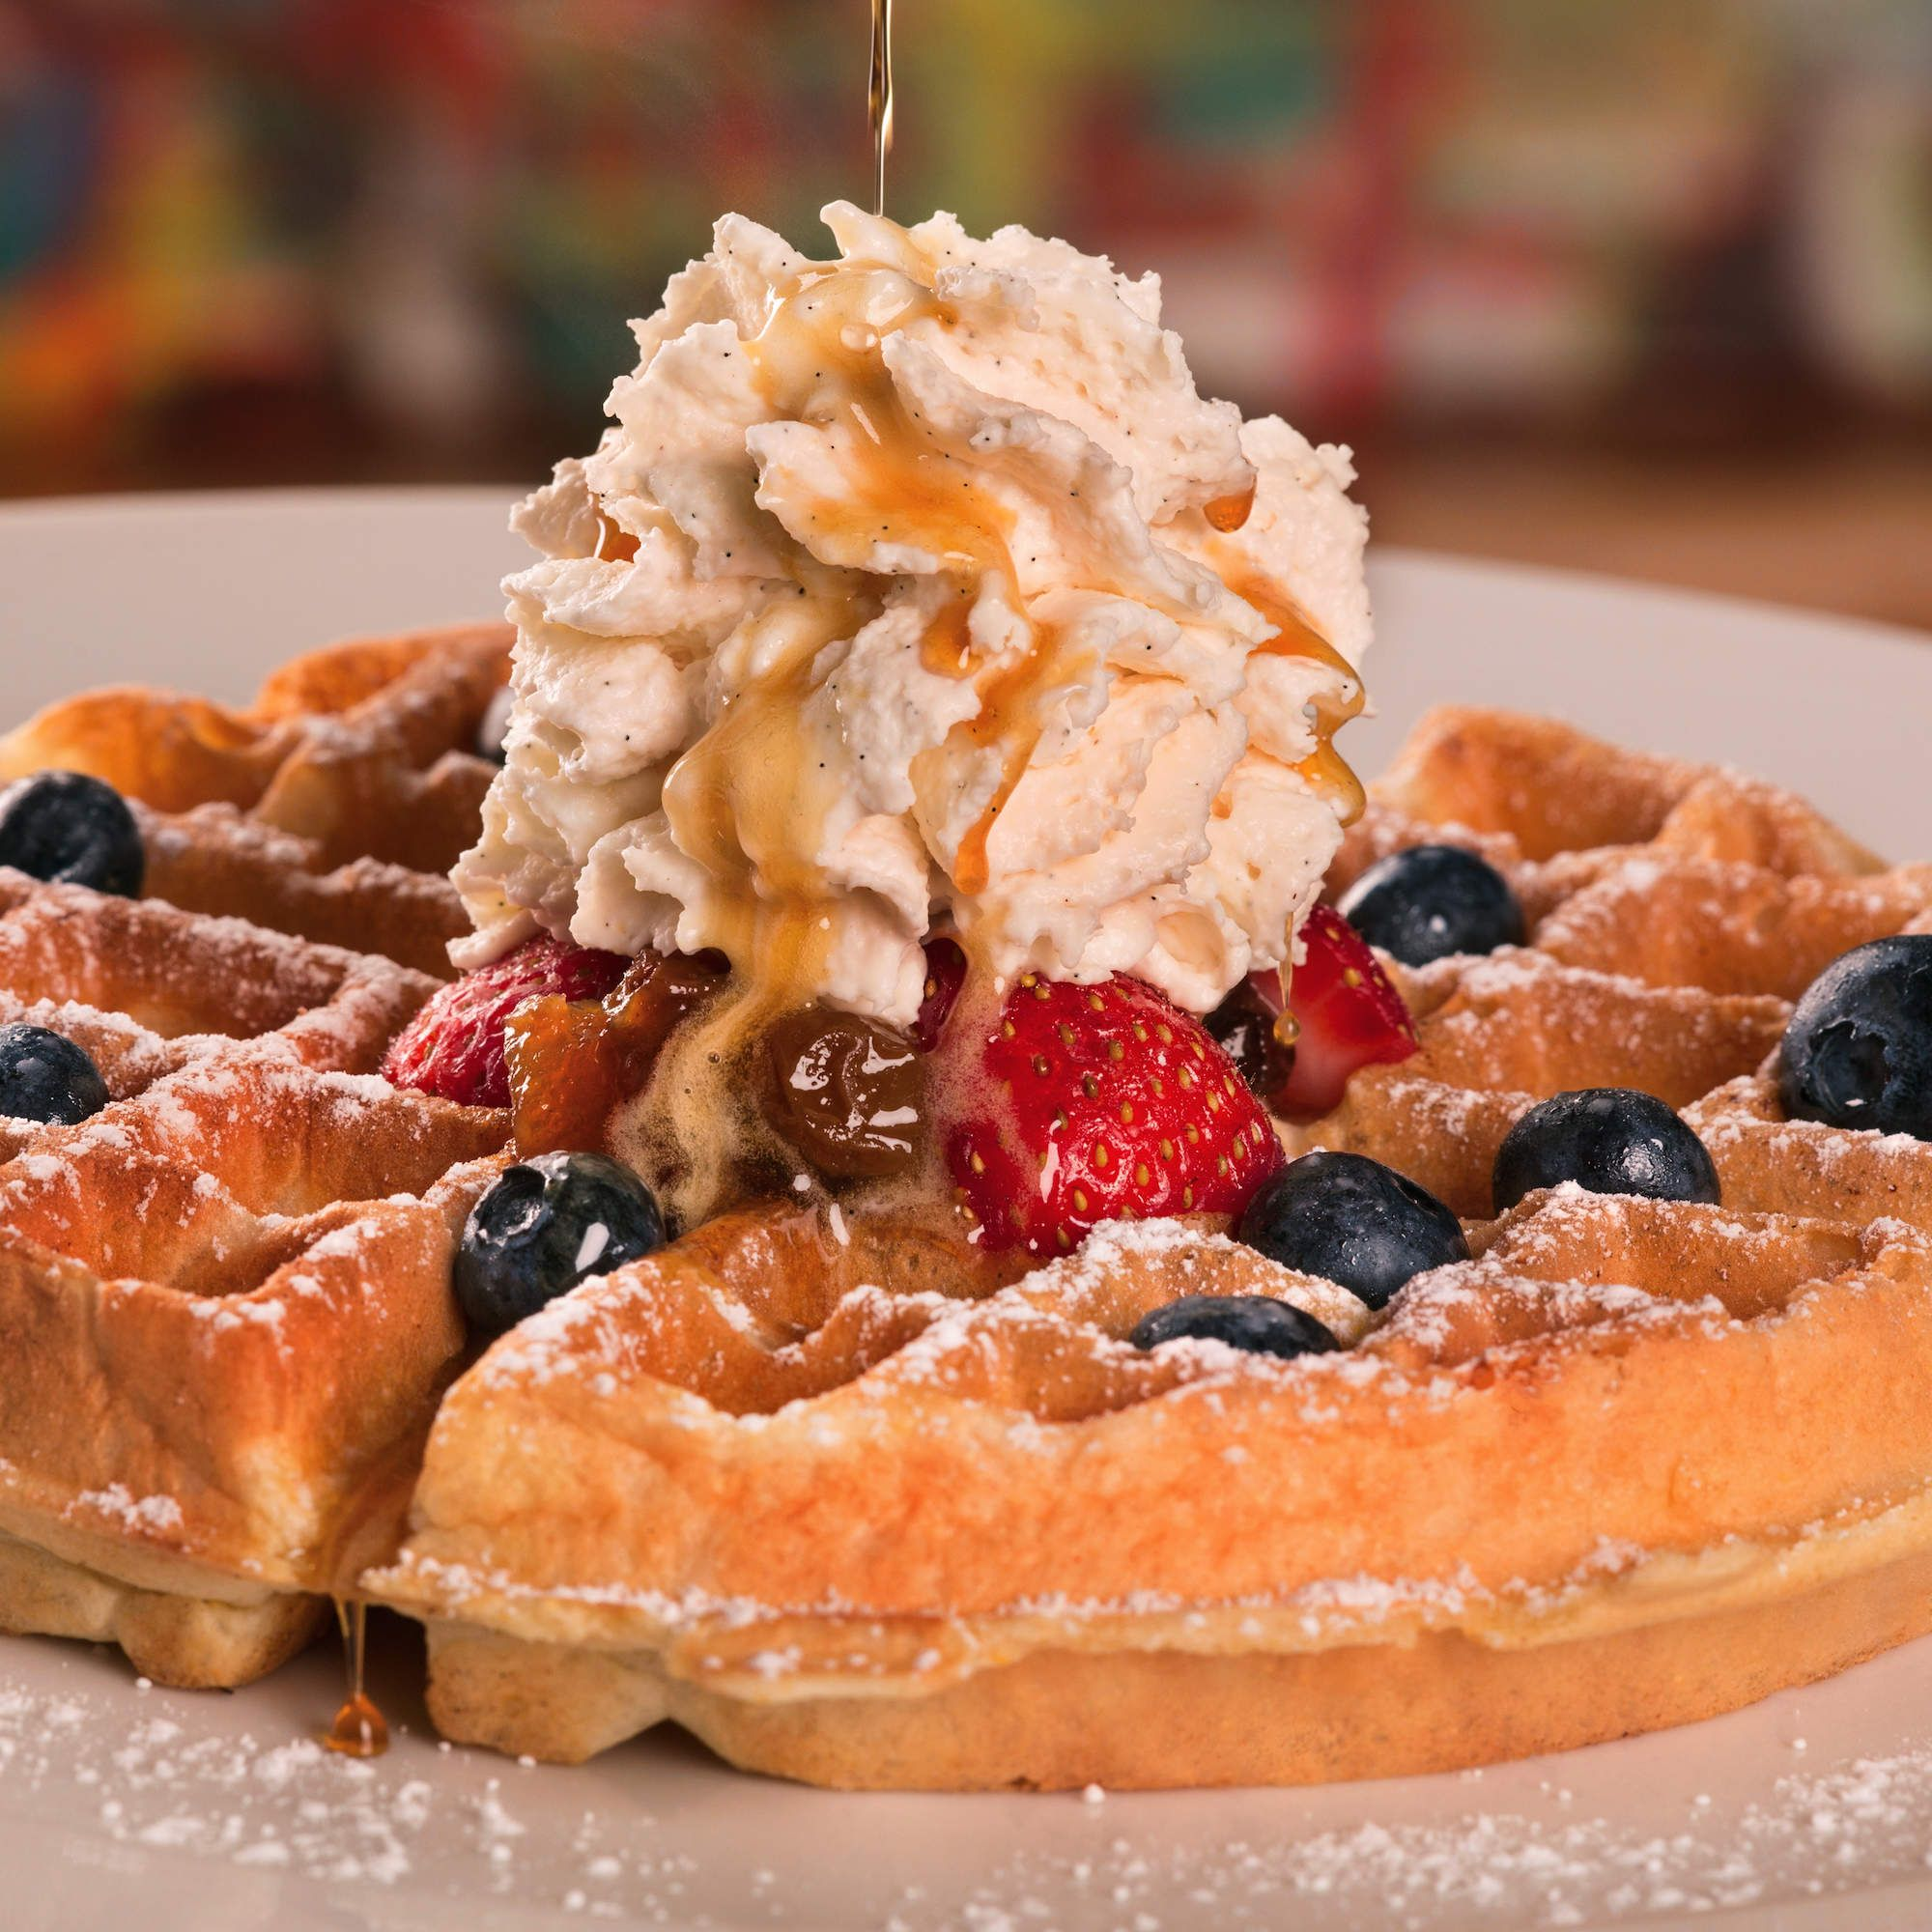 The Best Brunch Spots In Cleveland Right Now